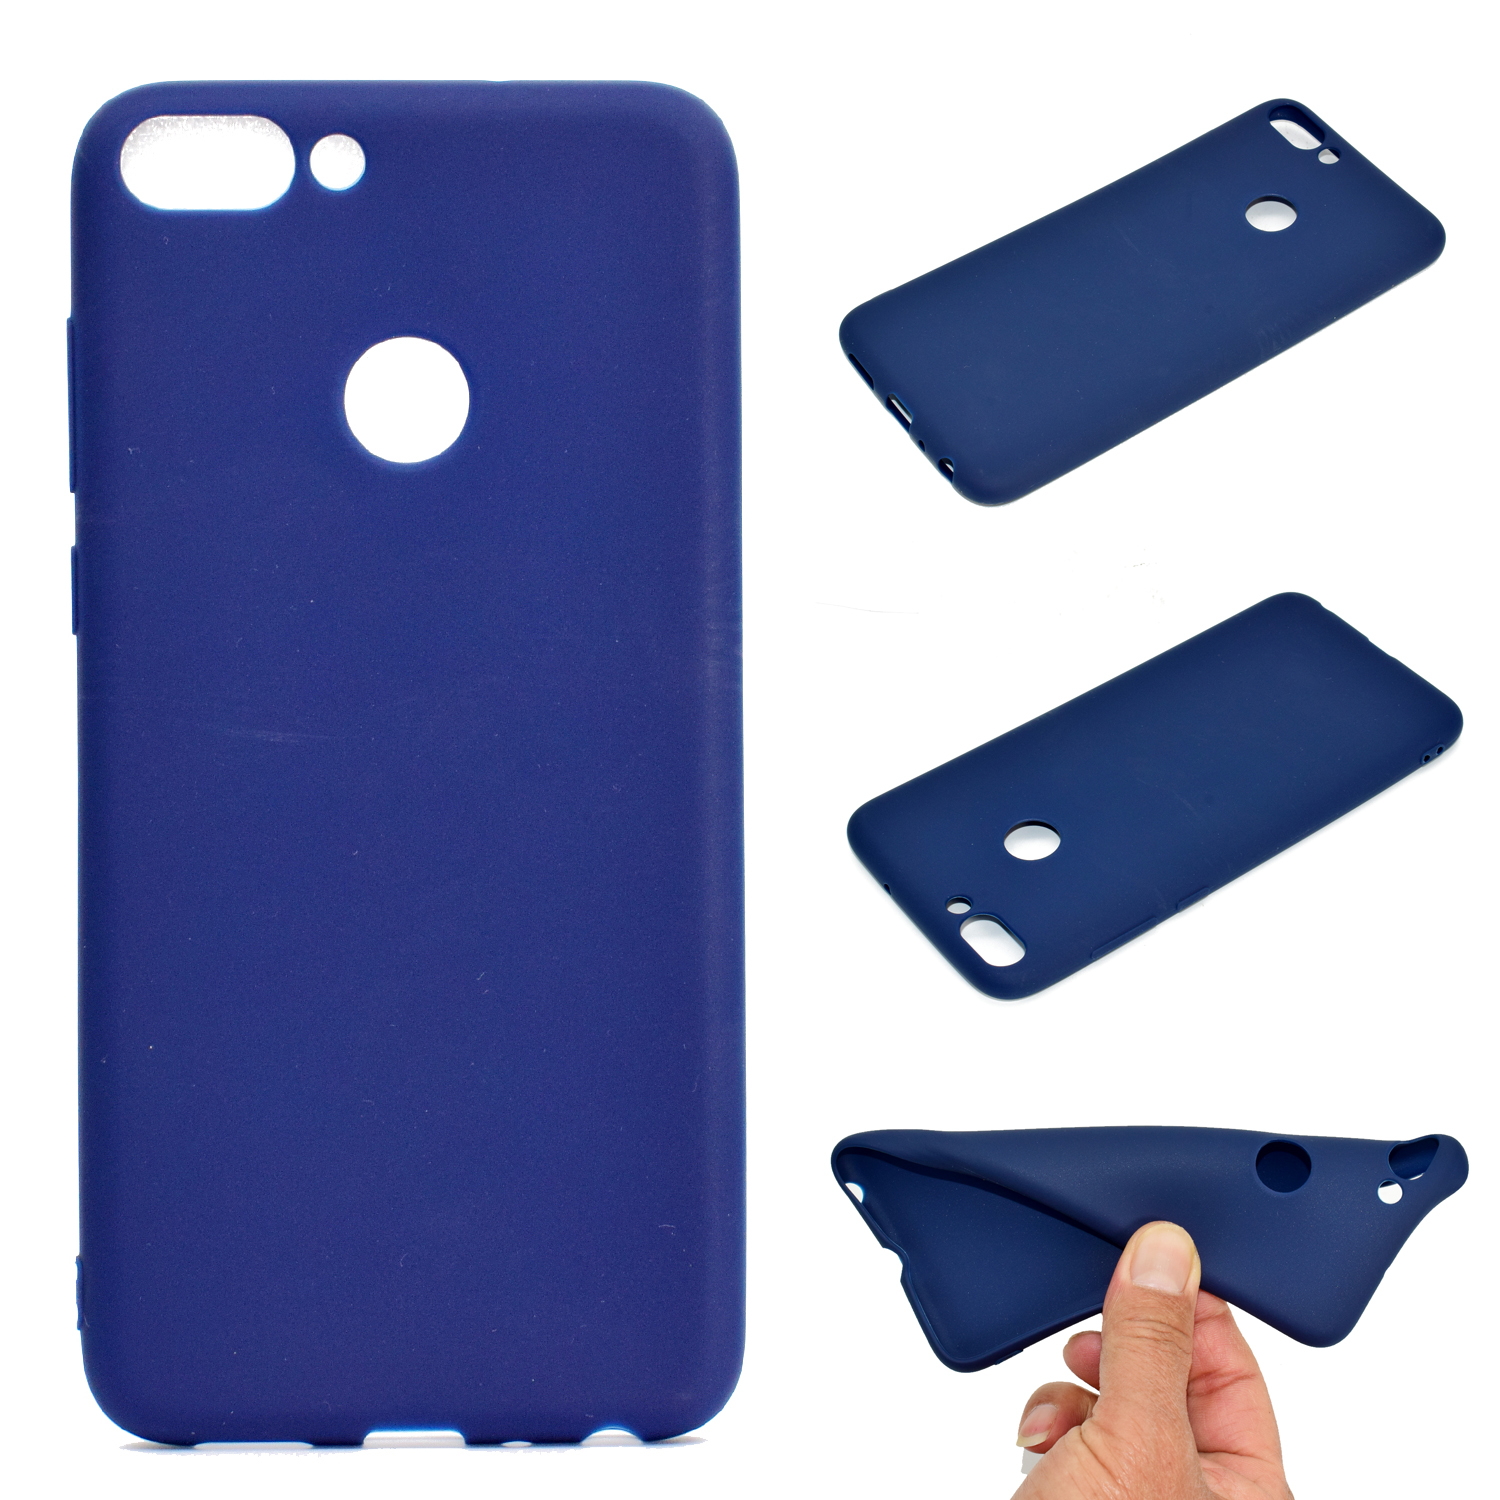 for HUAWEI Honor 9 lite Cute Candy Color Matte TPU Anti-scratch Non-slip Protective Cover Back Case Navy